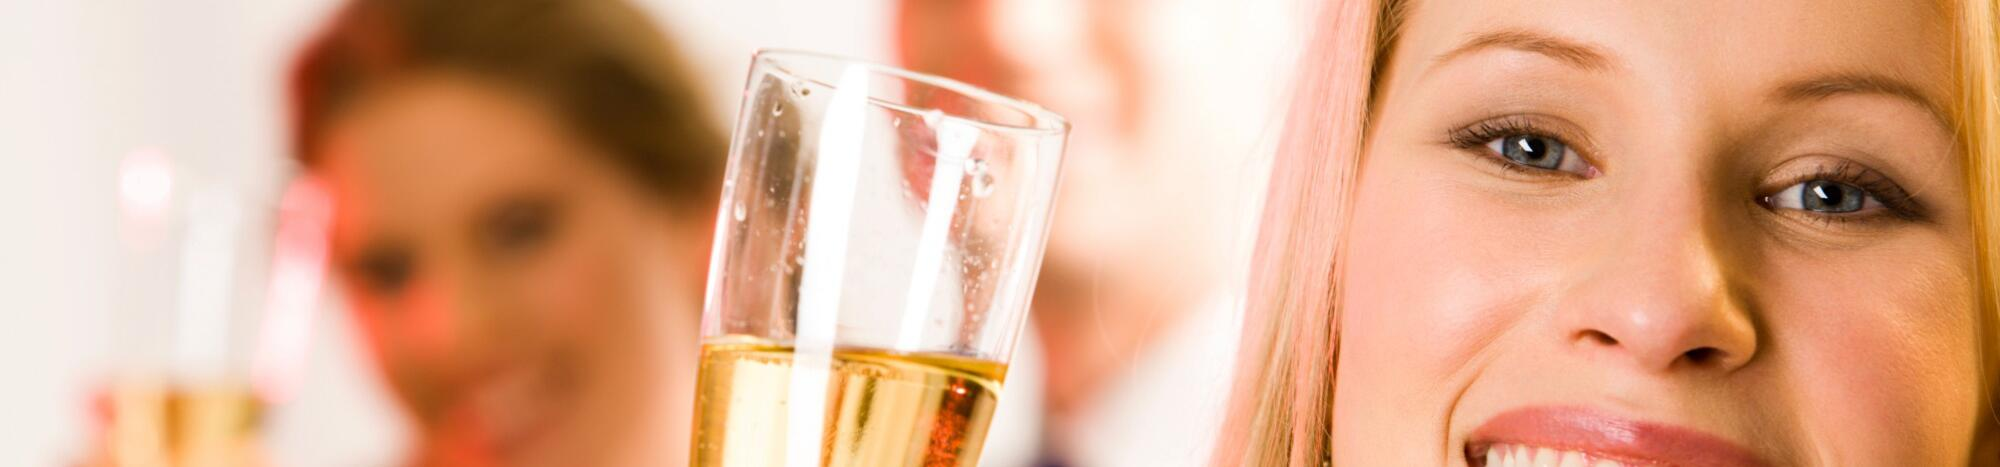 New Year's Offer Rimini in Hotel All Inclusive with Gala Dinner and New Year's Eve